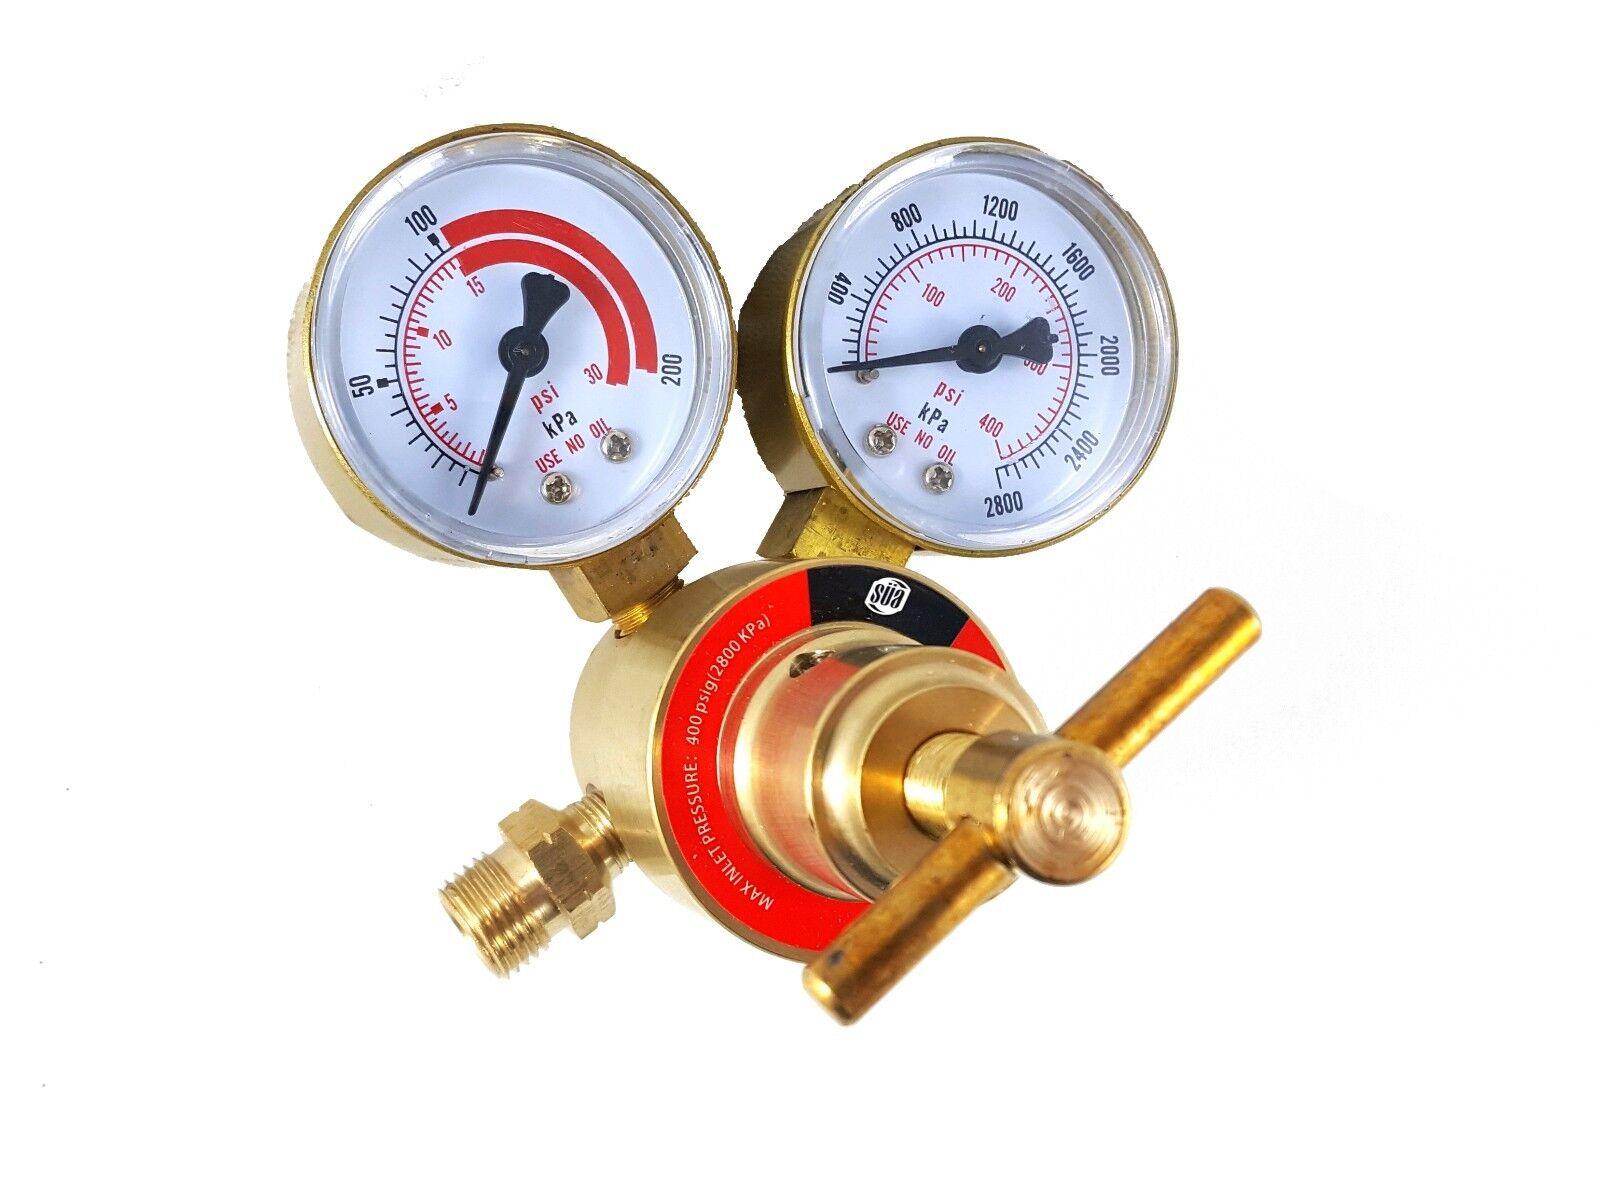 LDB series CGA-540 S/ÜA Oxygen Regulator Welding Gas Gauges Rear Connector